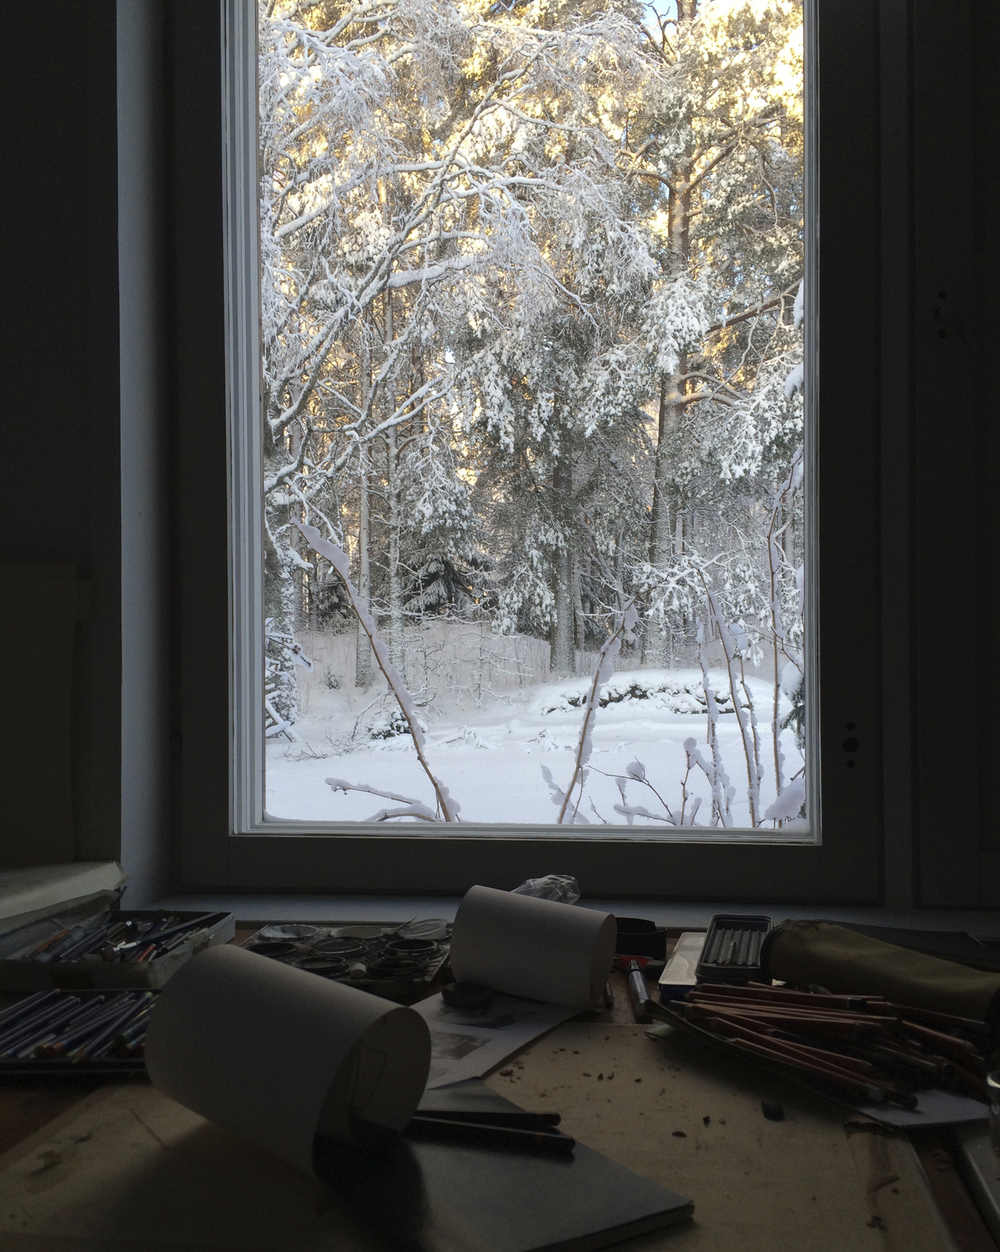 Koli: Studio window